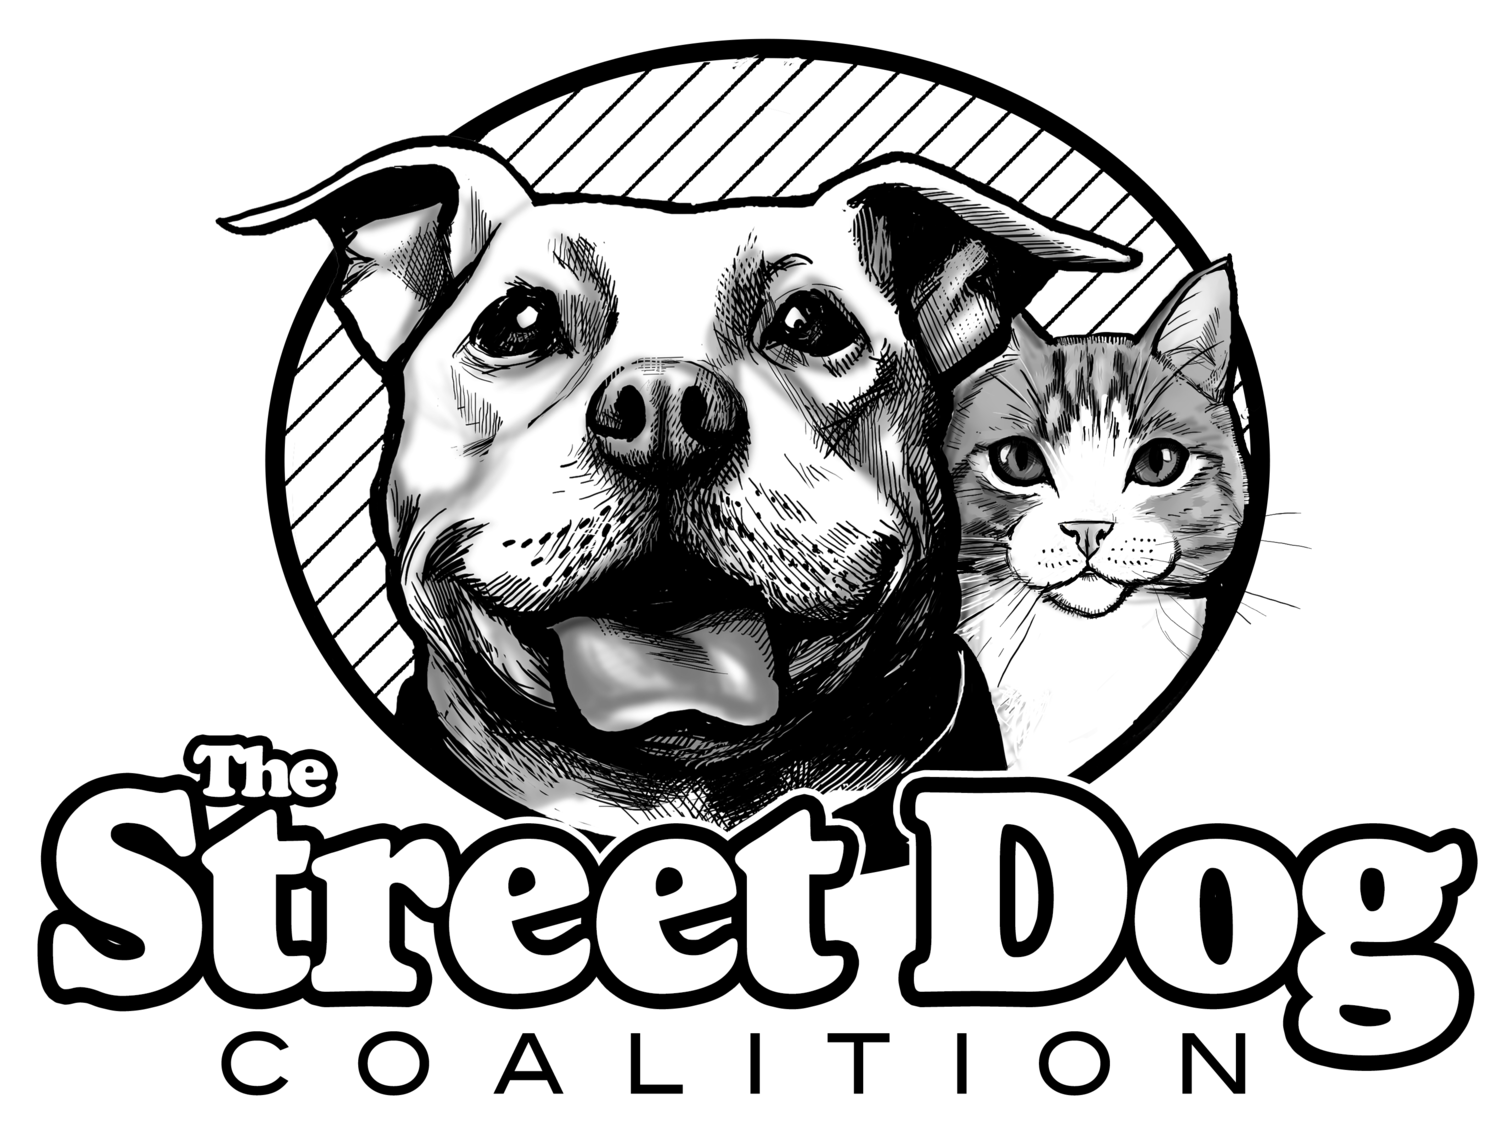 The Street Dog Coalition